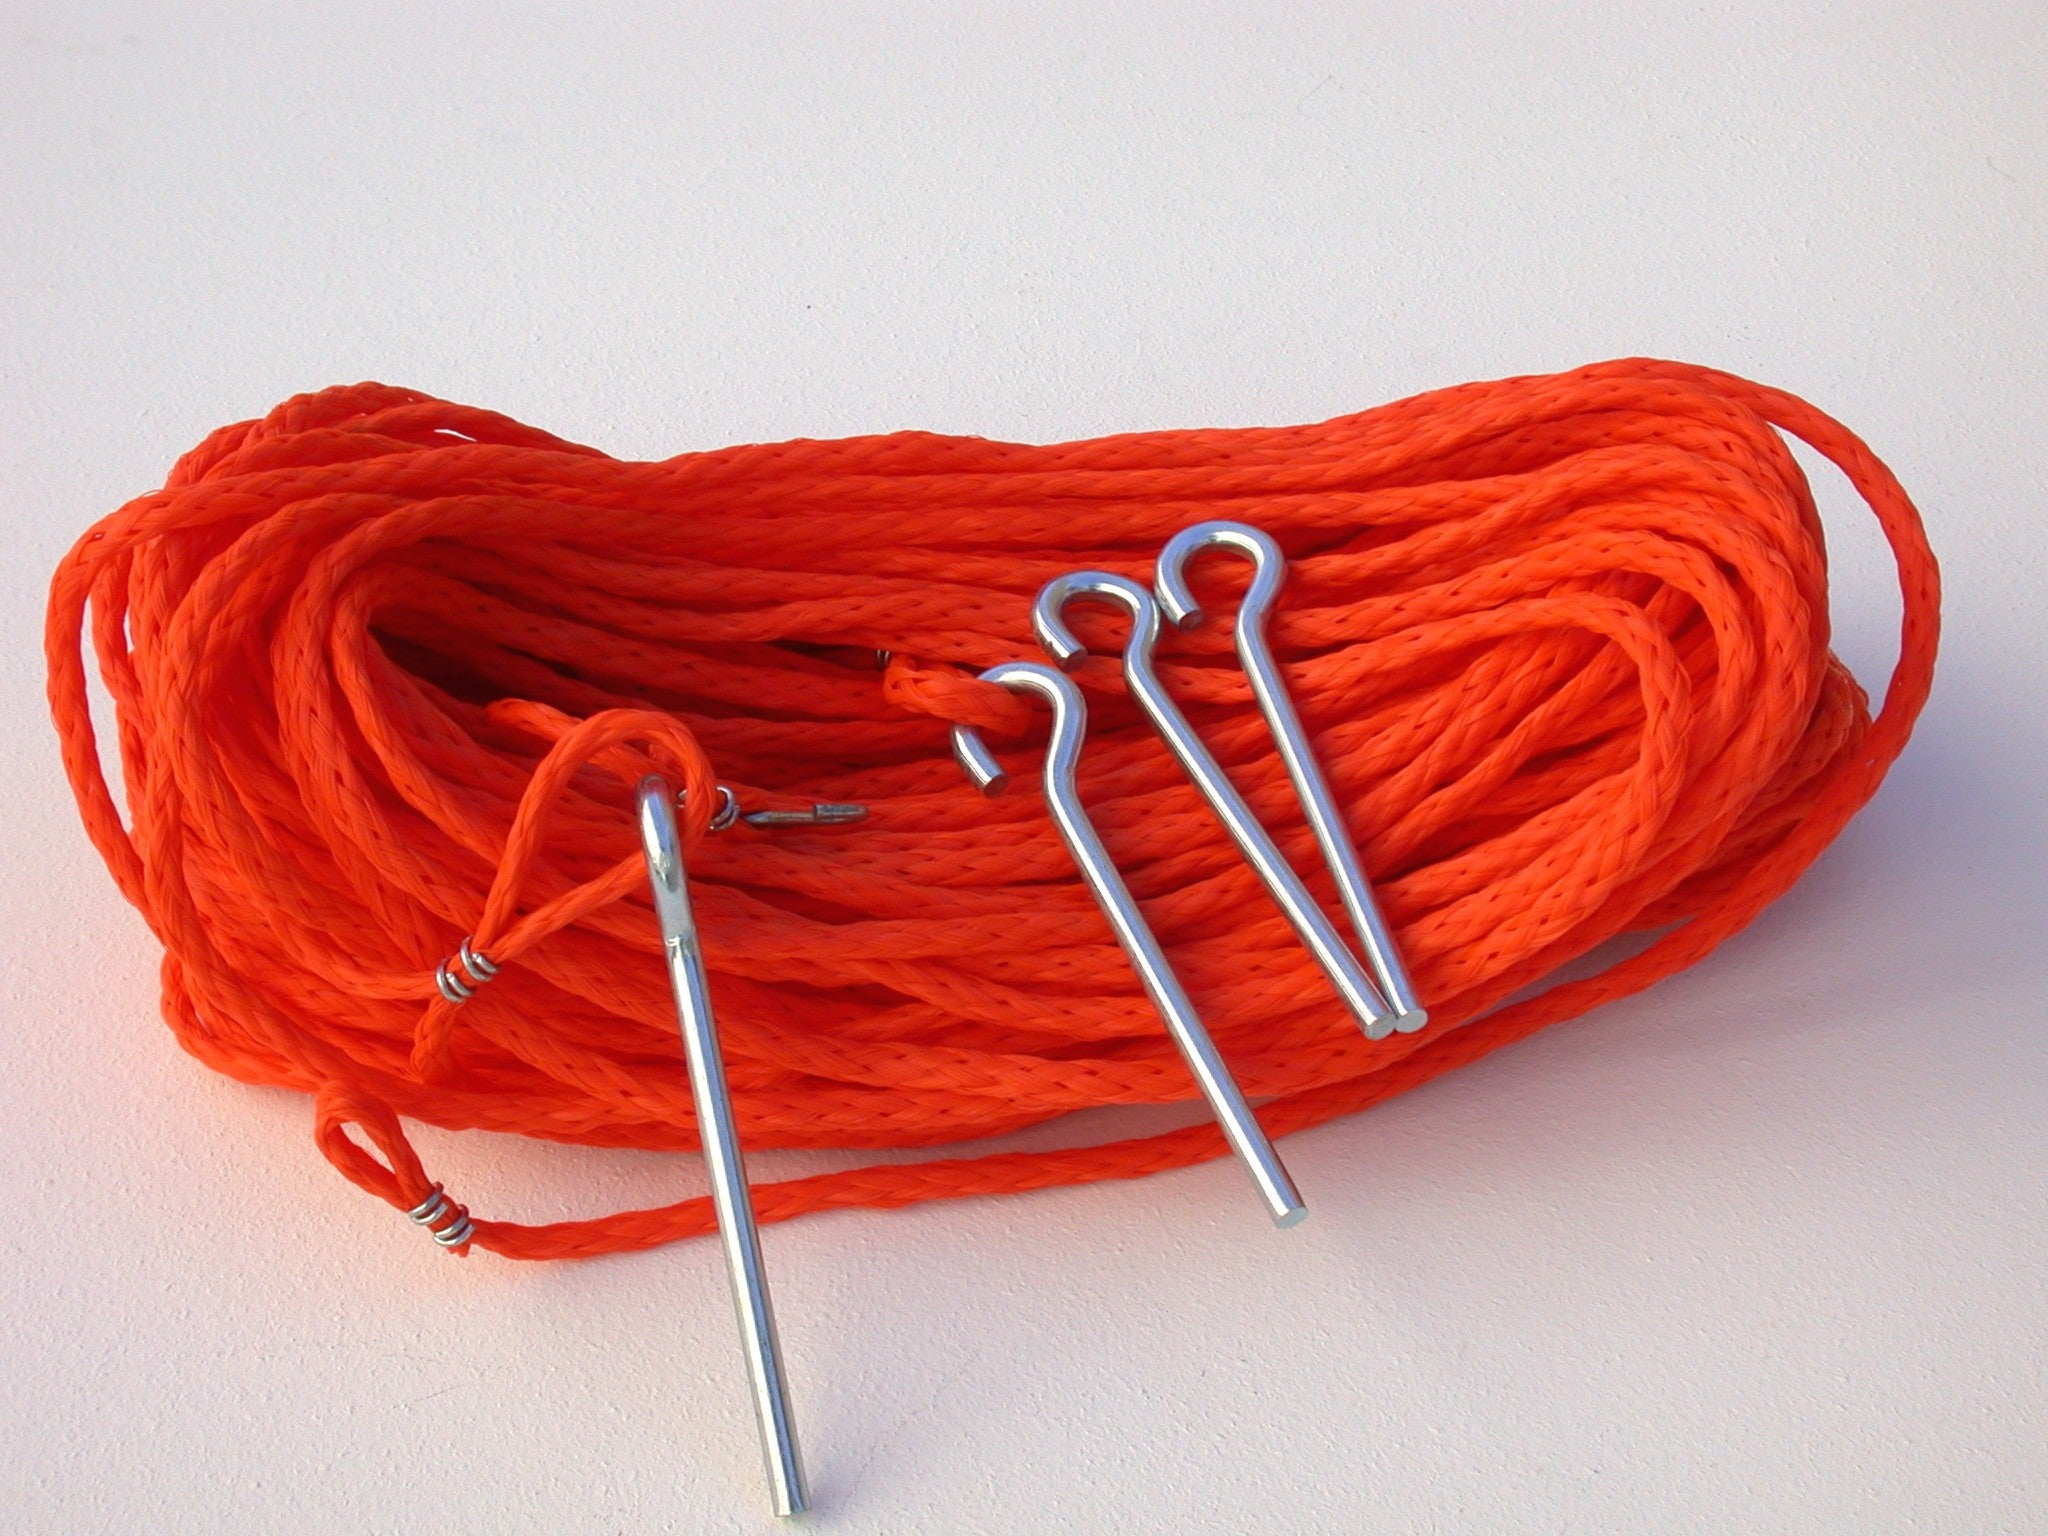 M25OG-orange 1/4-inch rope non-adjustable boundary + grass pegs